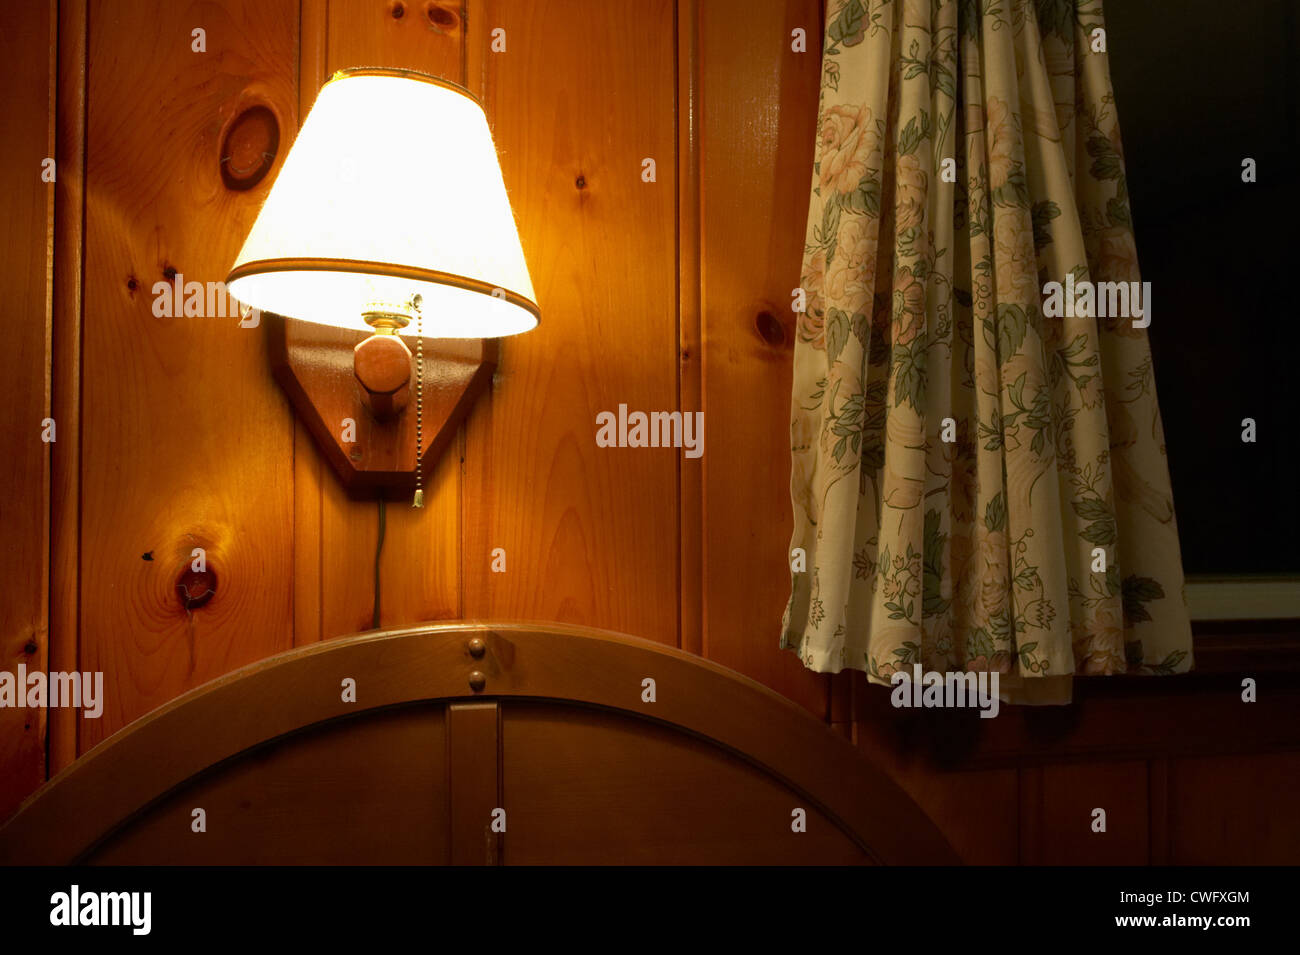 Shaded lamp on a wood paneled wall with curtains stock photo shaded lamp on a wood paneled wall with curtains mozeypictures Gallery